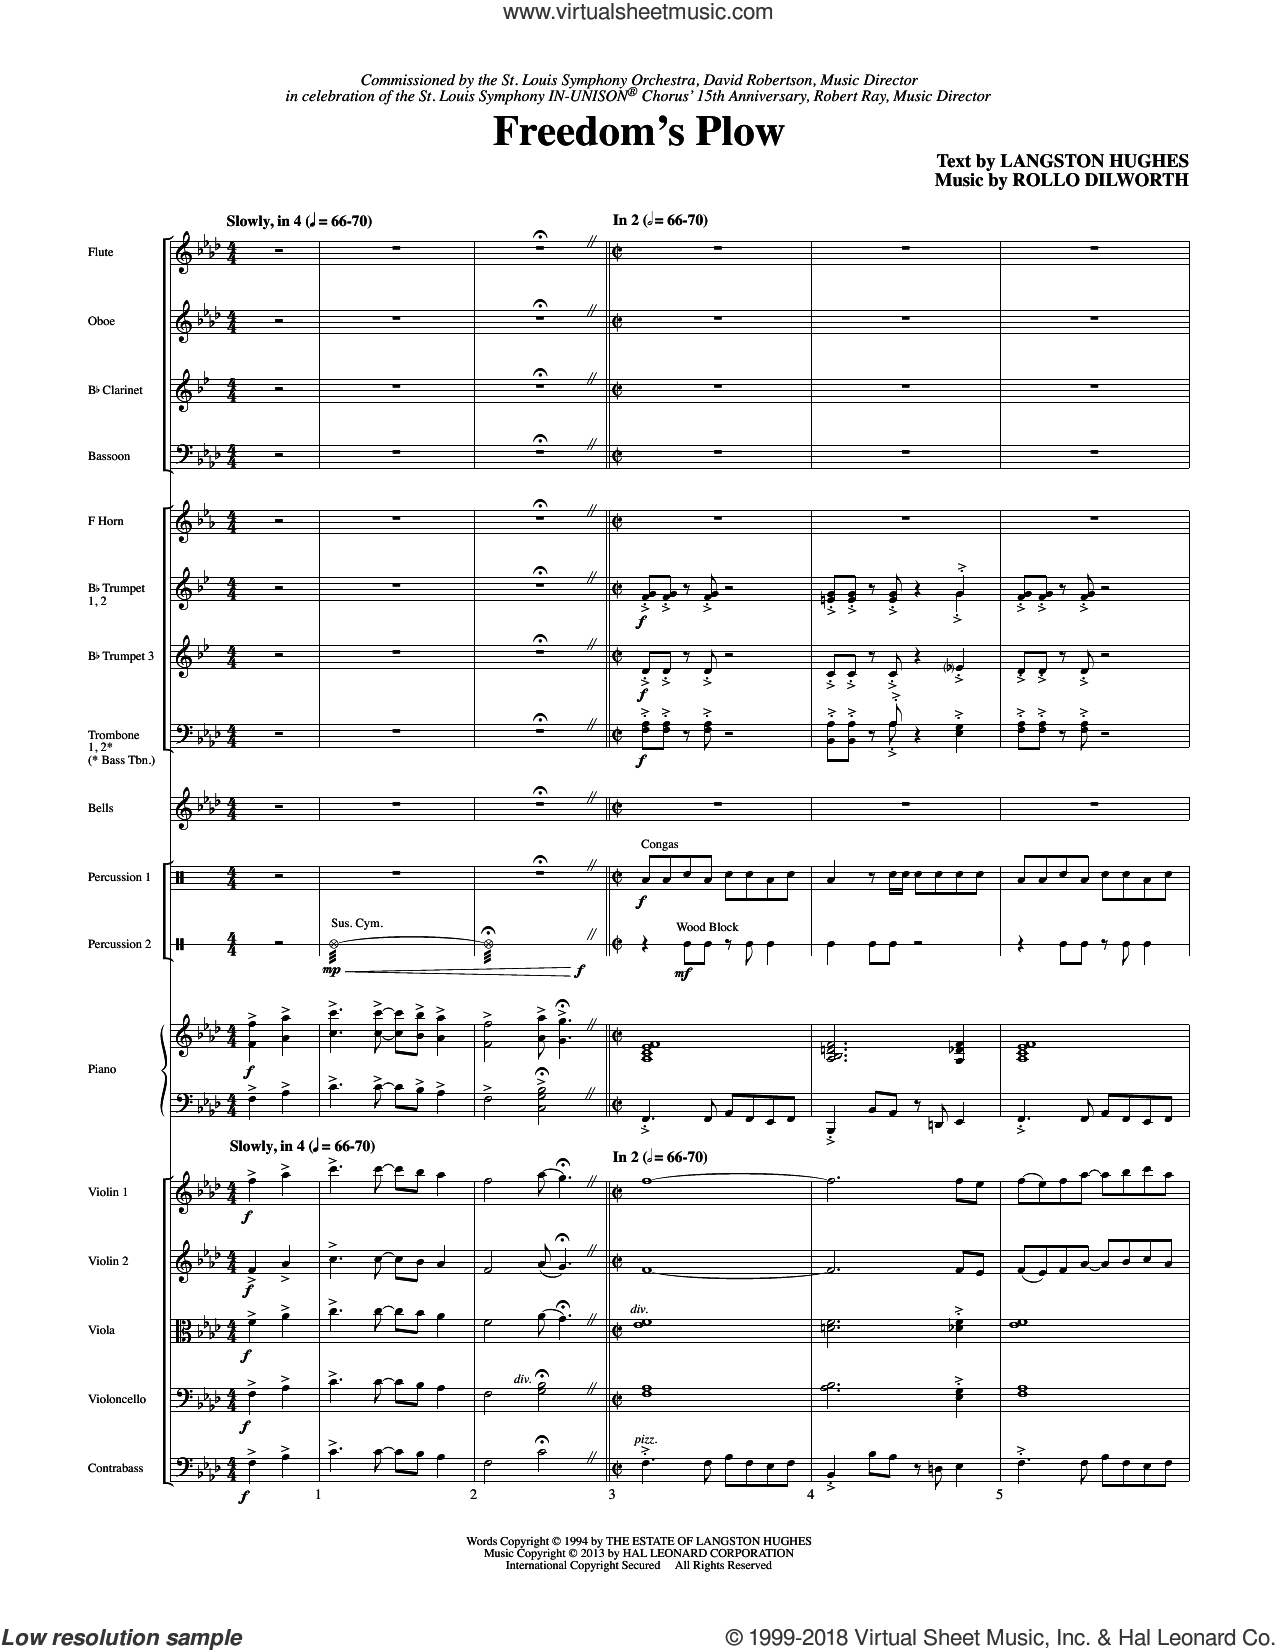 Freedom's Plow (COMPLETE) sheet music for orchestra/band by Rollo Dilworth and Langston Hughes, intermediate skill level